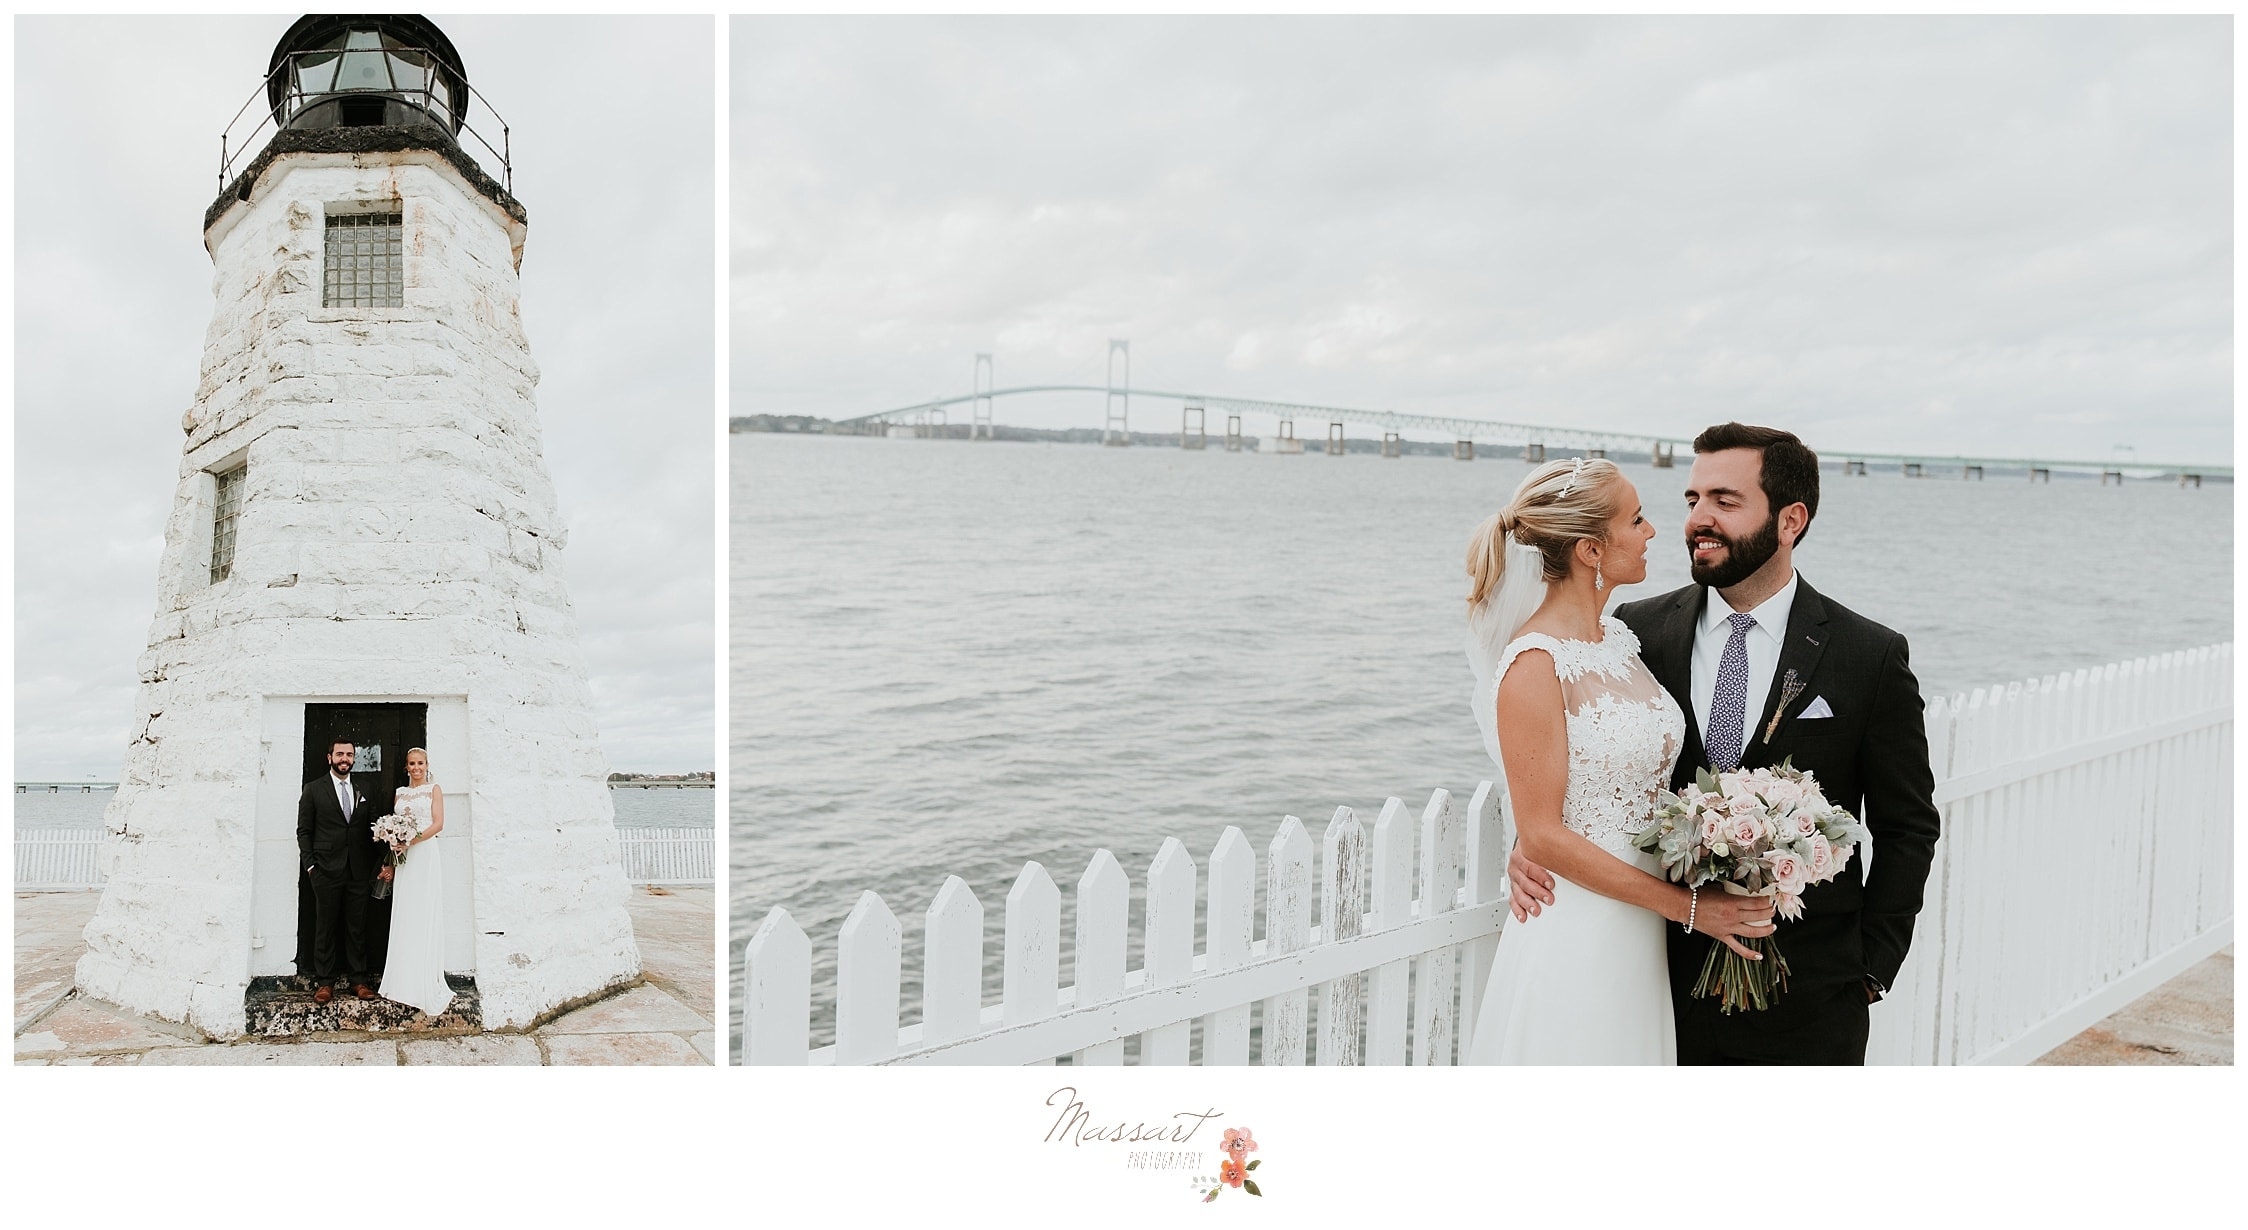 Formal portraits of the bride and groom by the lighthouse photographed by Massart Photography RI